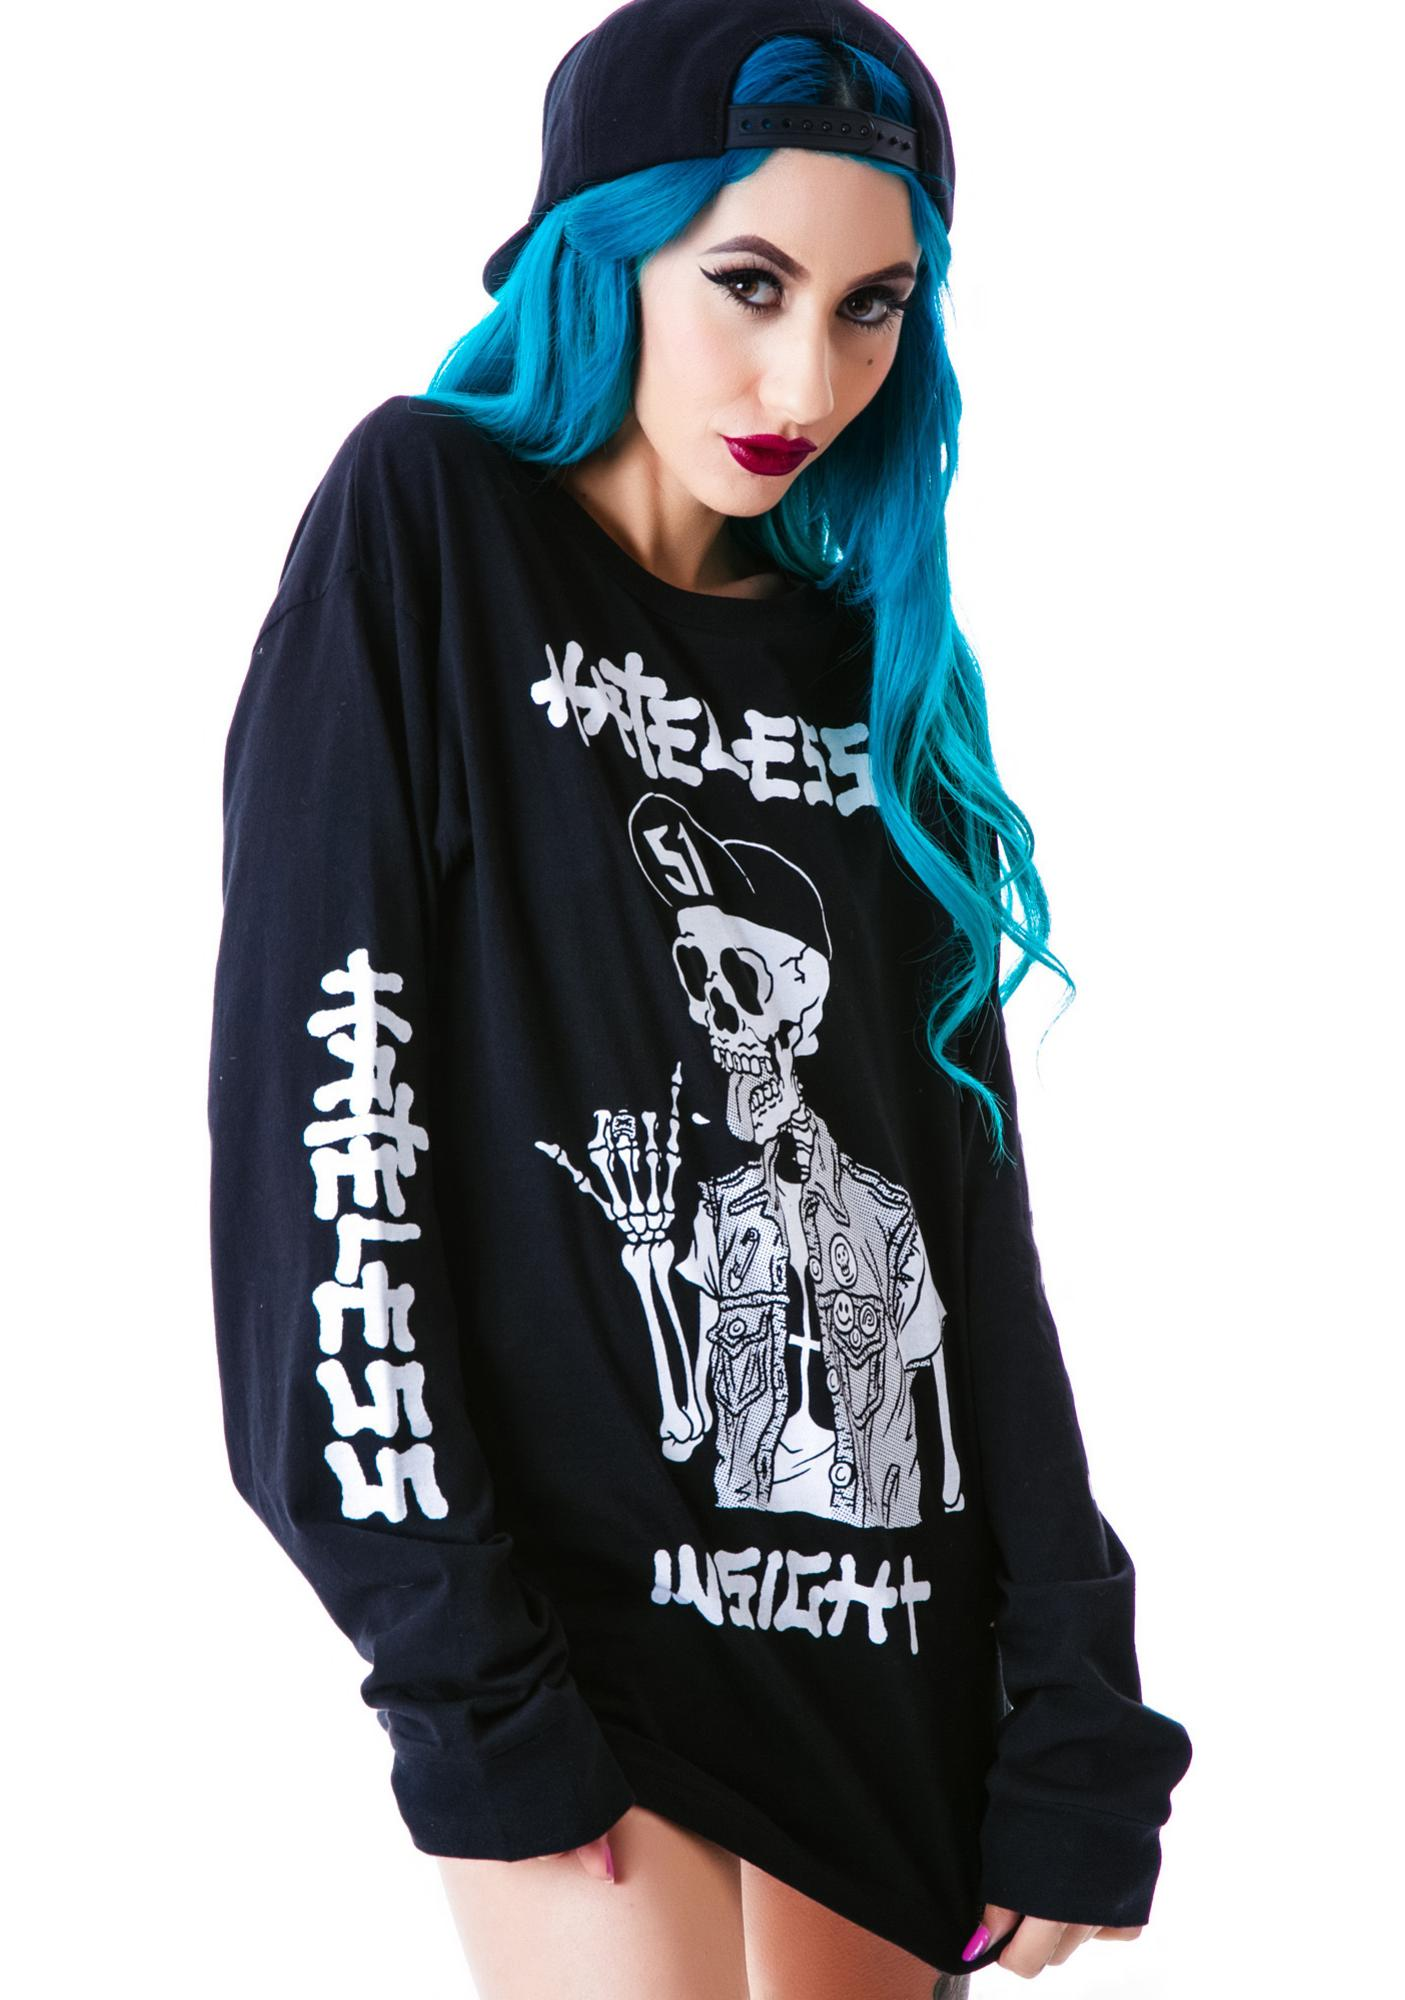 Insight Hateless Long Sleeve Tee